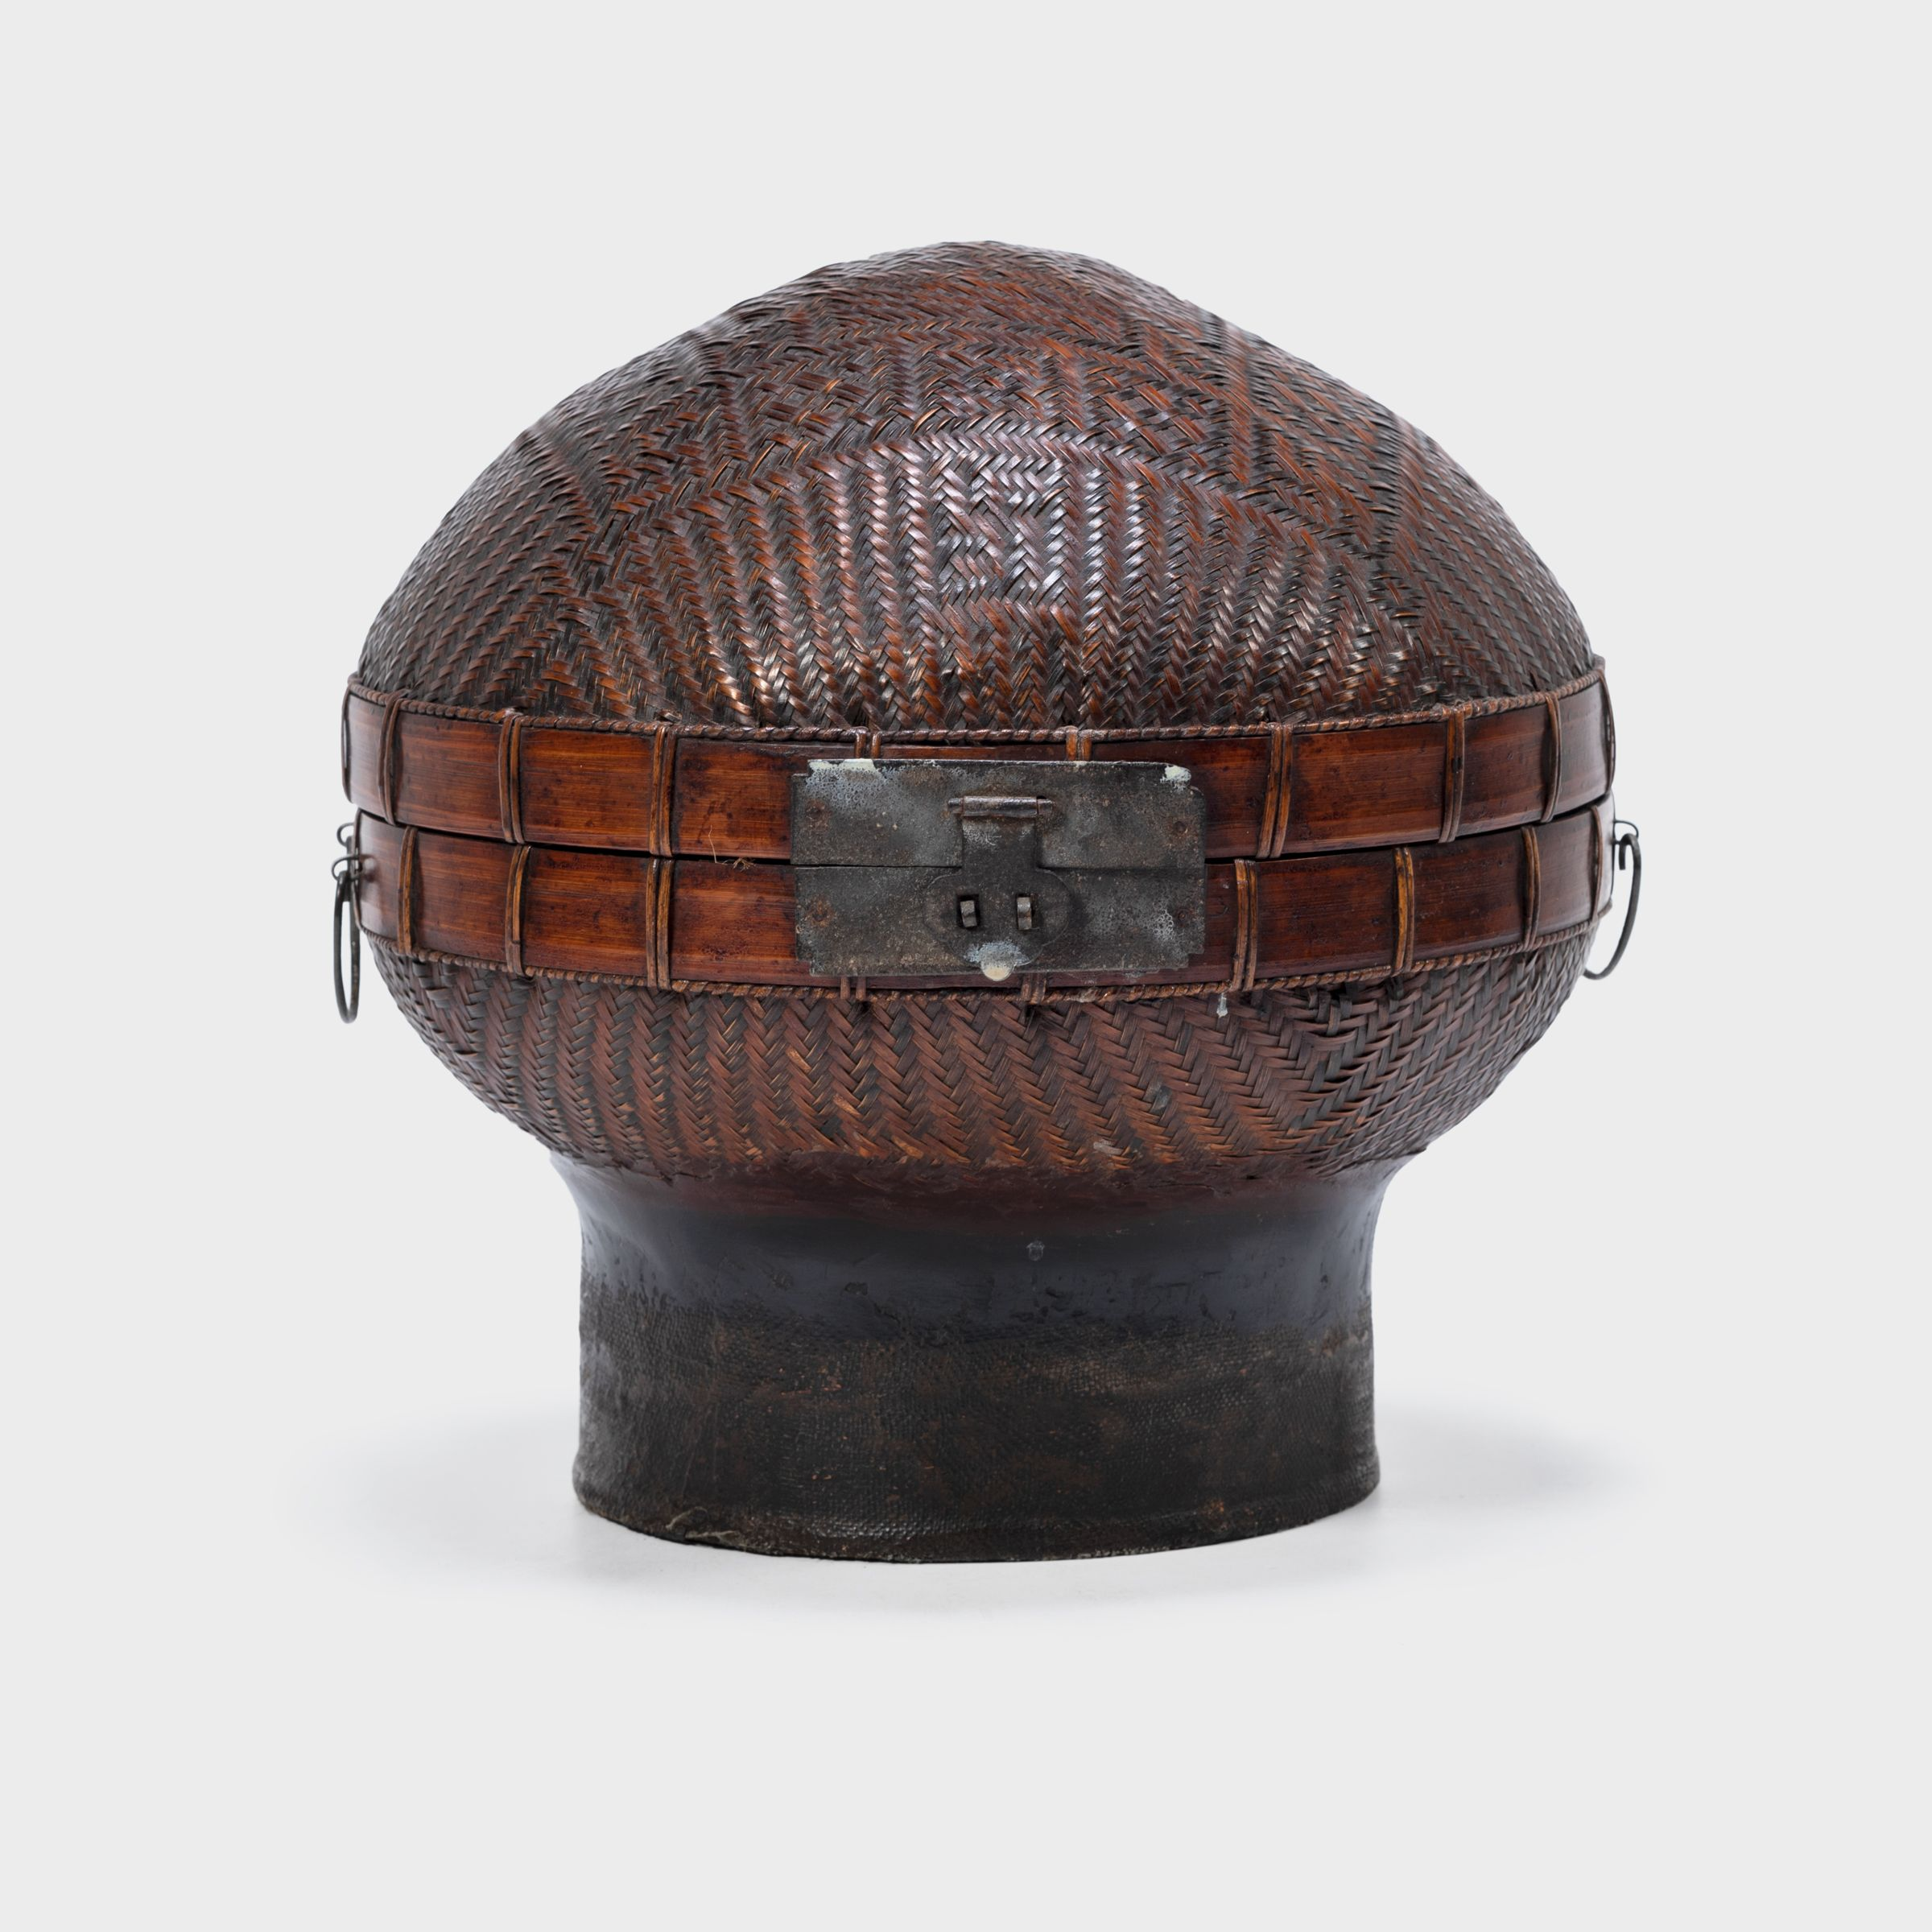 Chinese Baskets Asian Wooden Boxes Pagoda Red Wooden Boxes Baskets And Boxes Asian Baskets